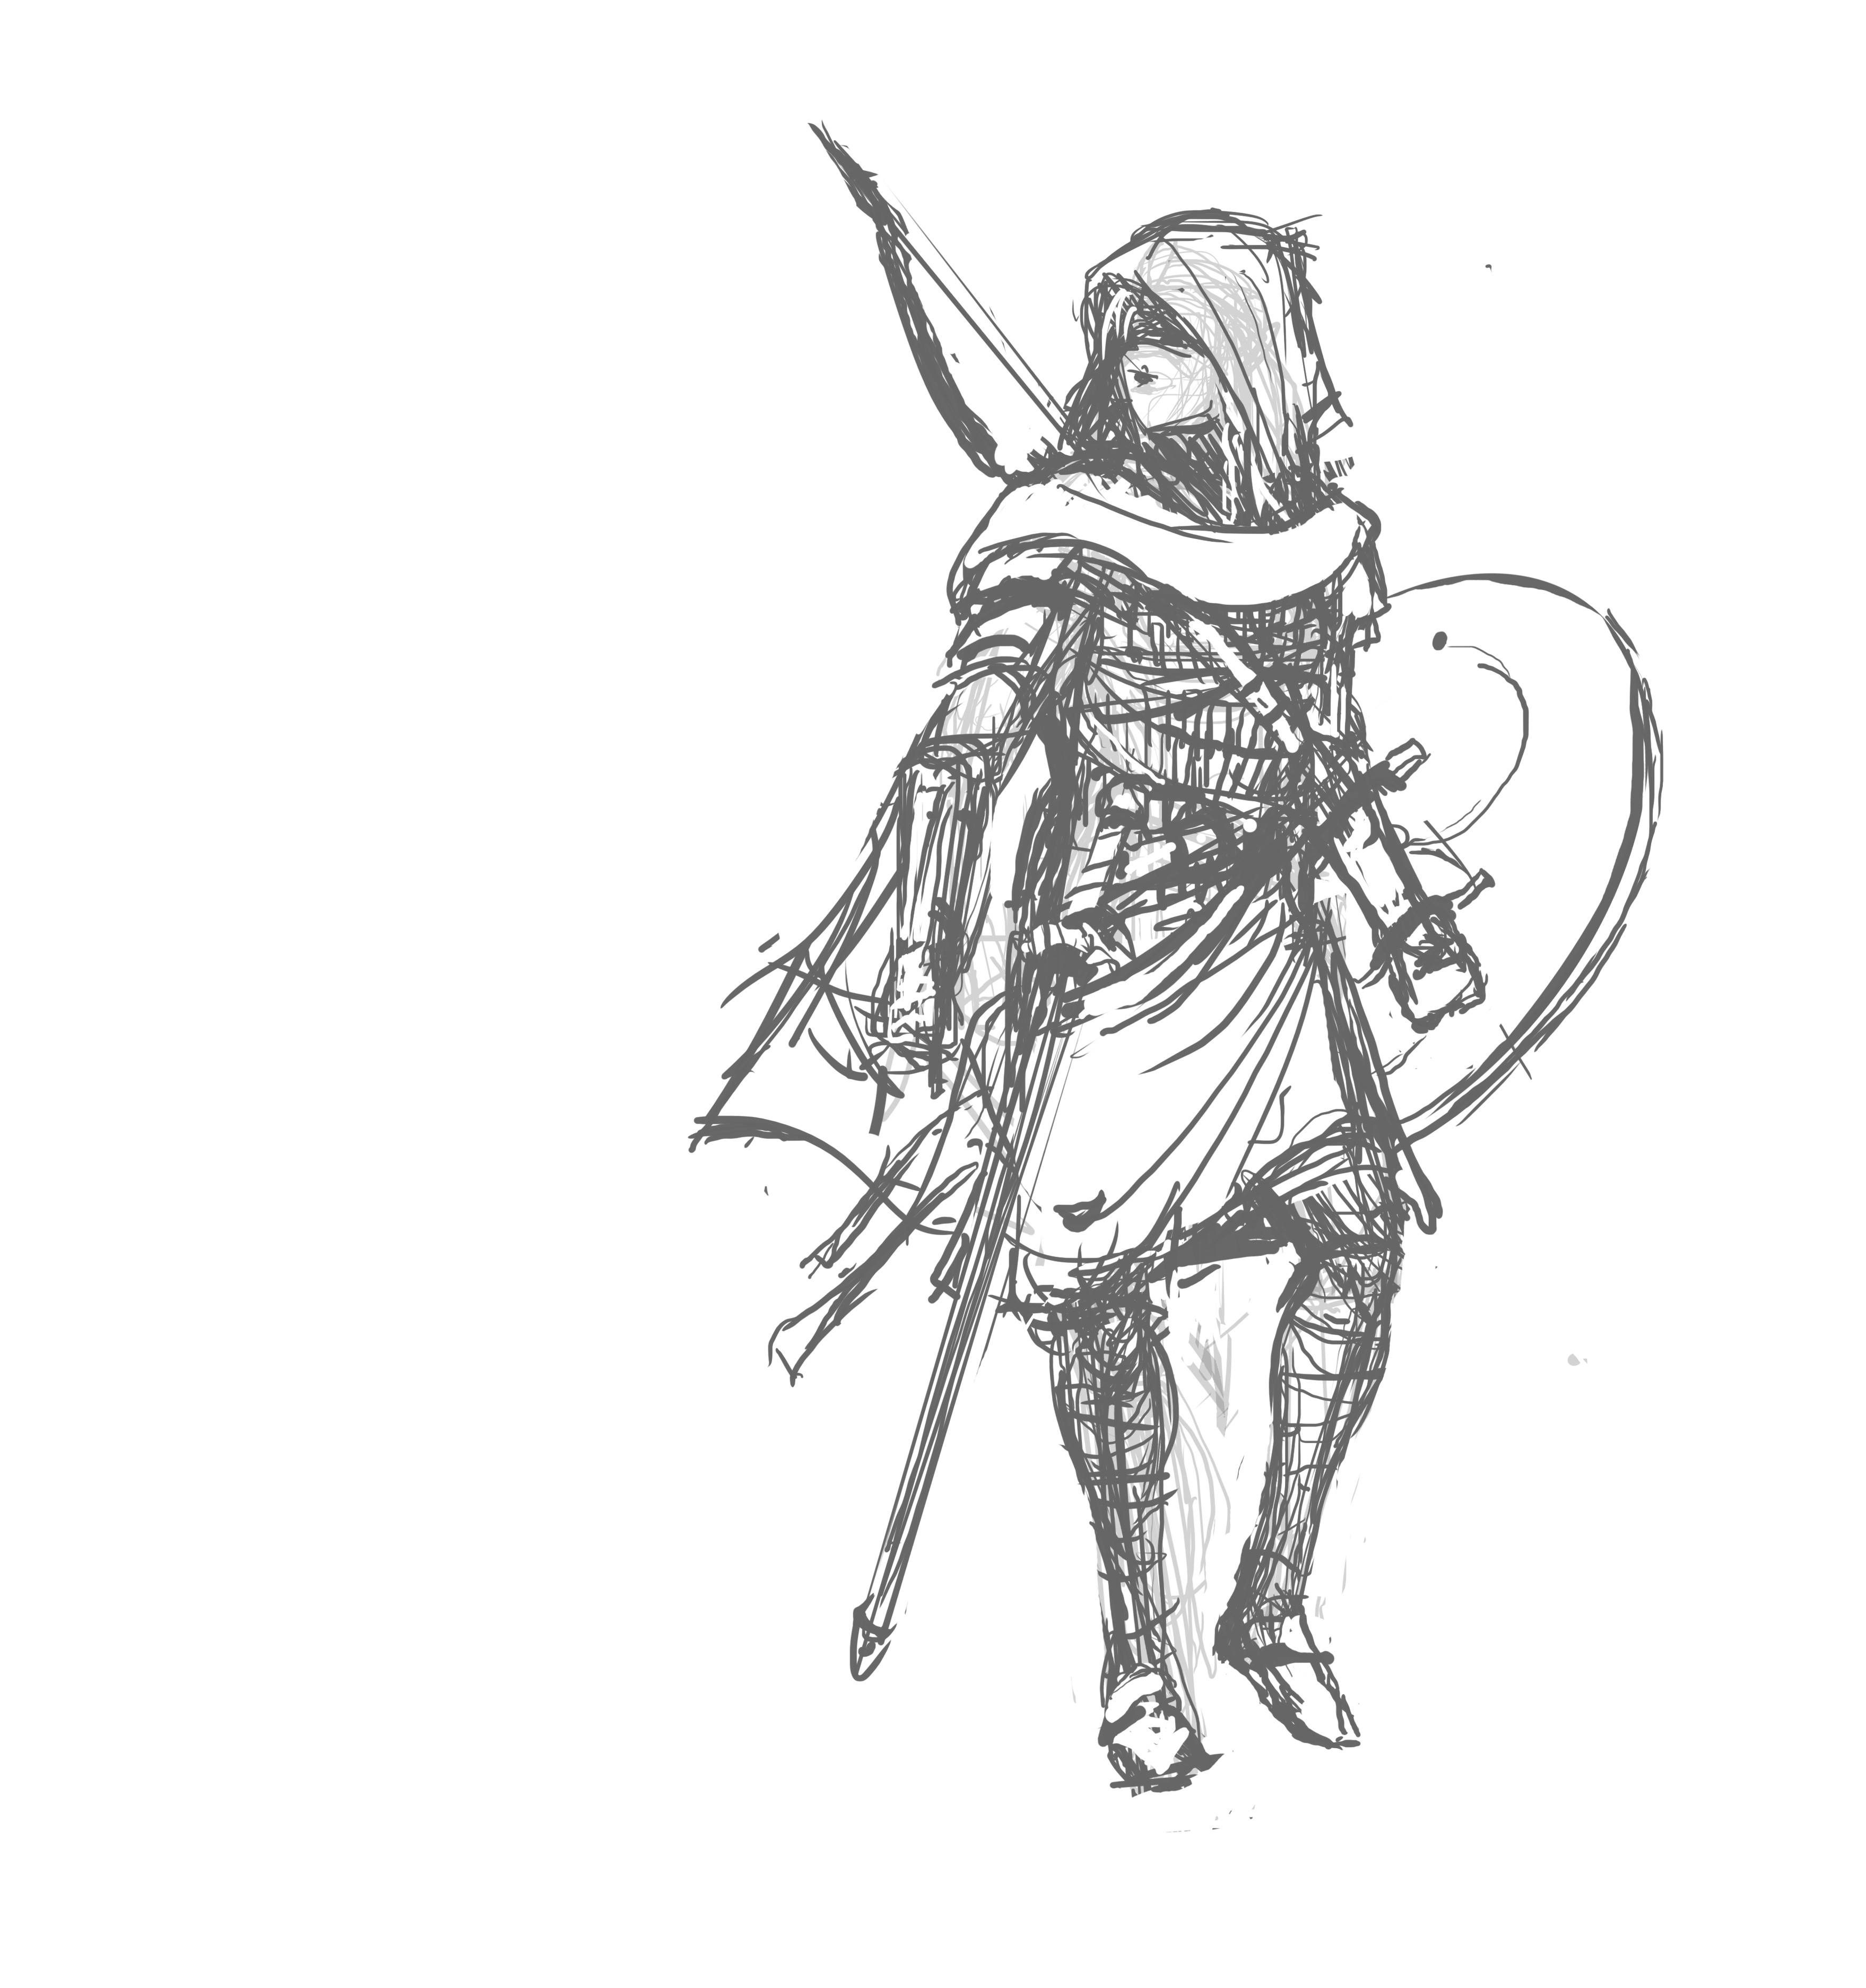 character sketch.